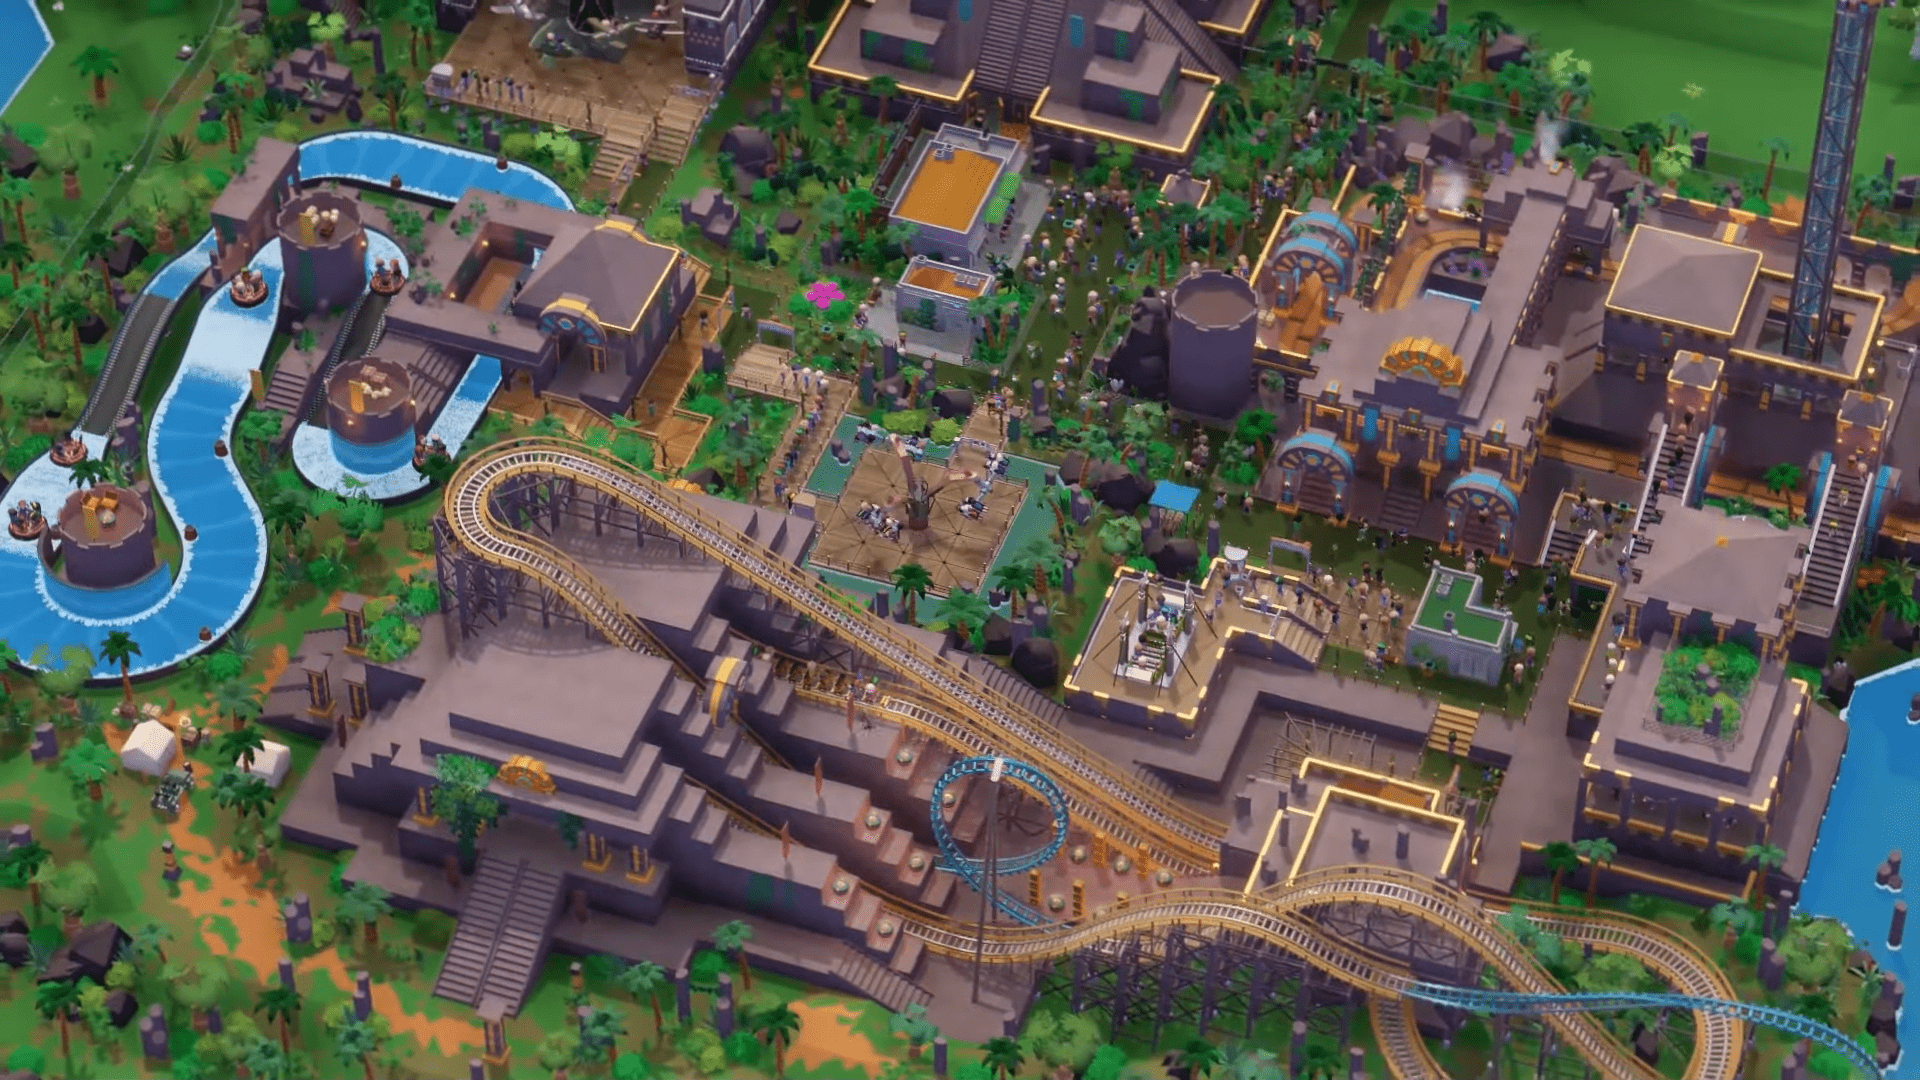 Parkitect Launches Both 1.5 Along With Offering New DLC Called 'Taste of Adventure'